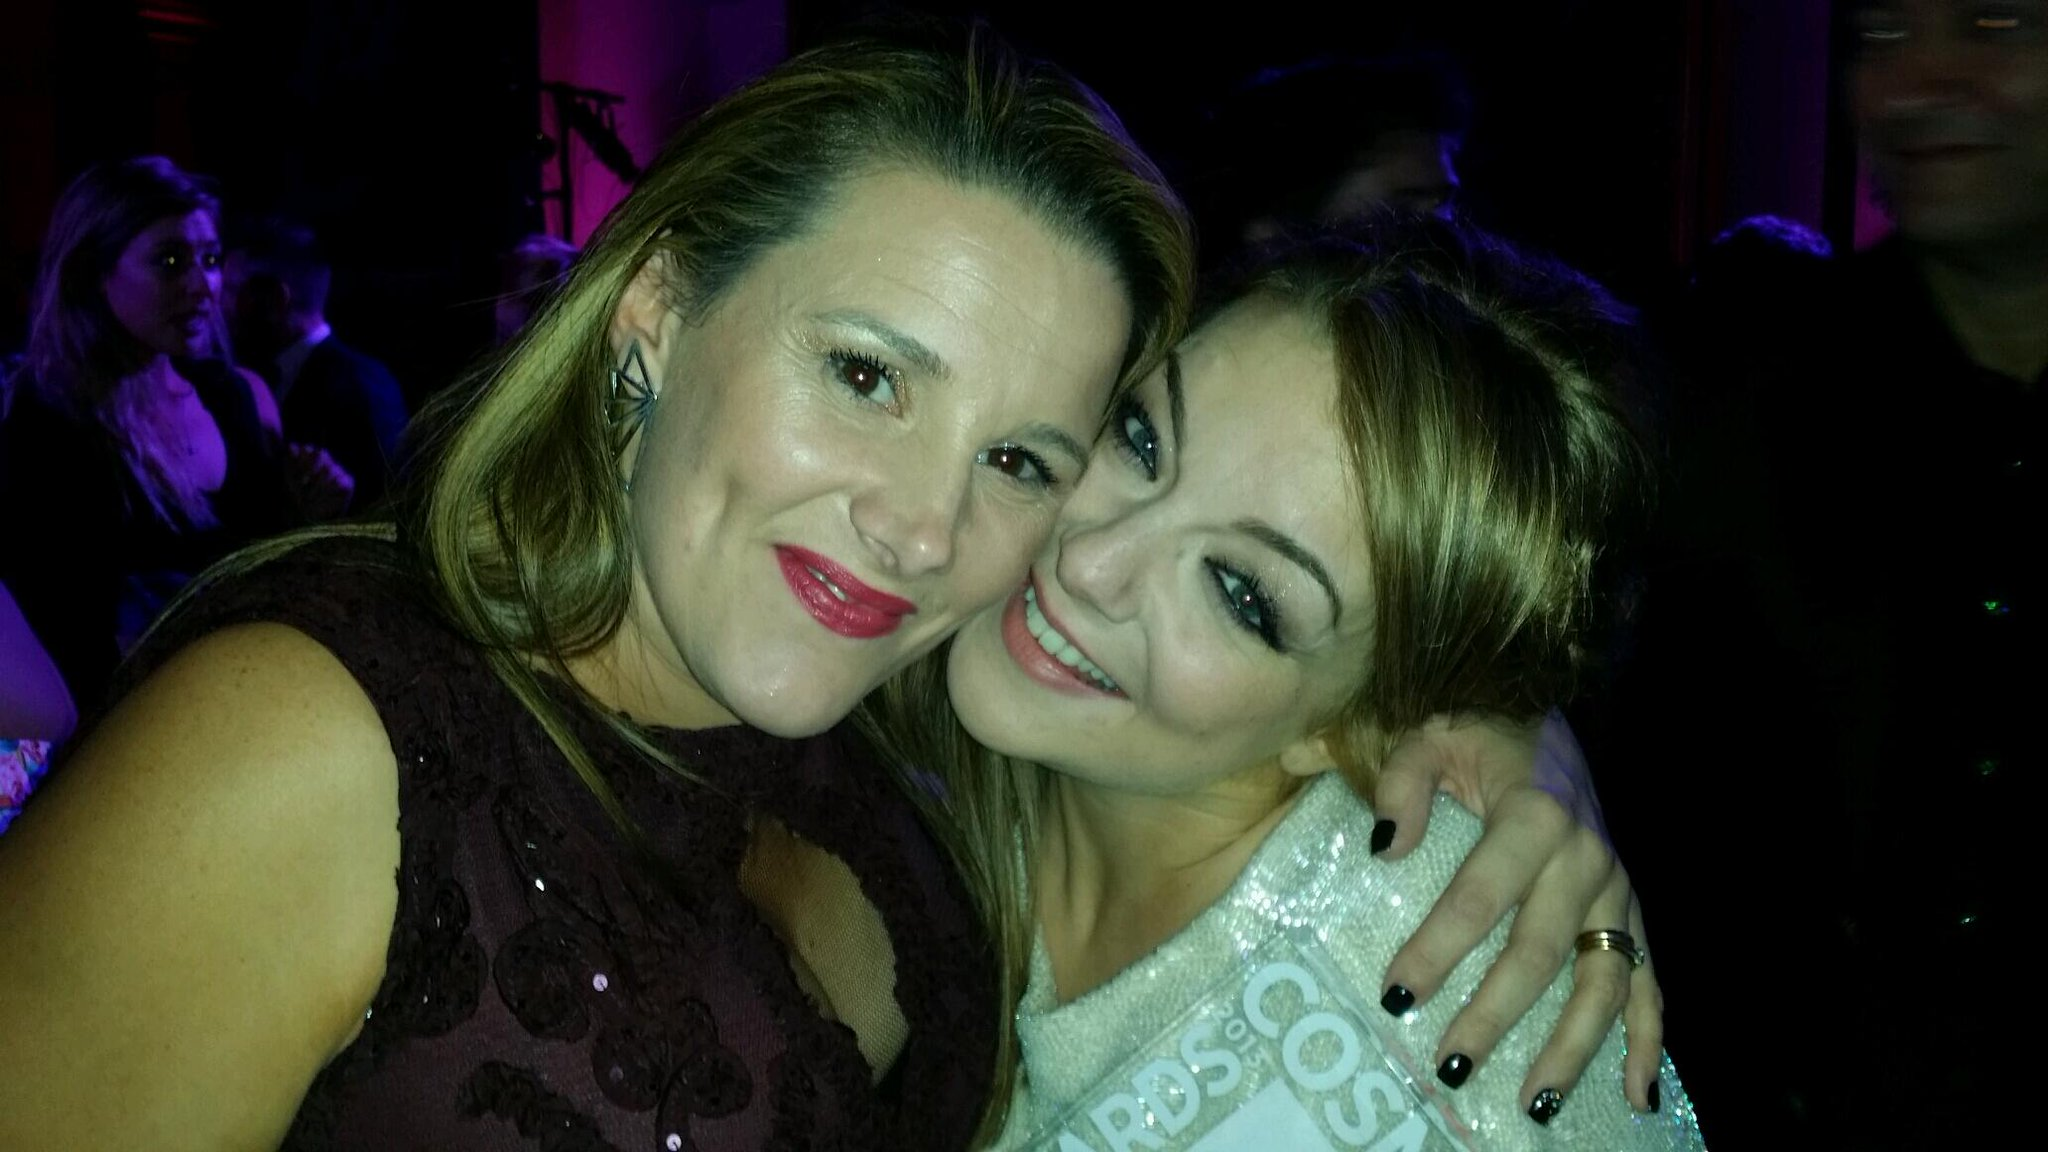 Me and Sheridan Smith http://t.co/3LZ8eqPF4K